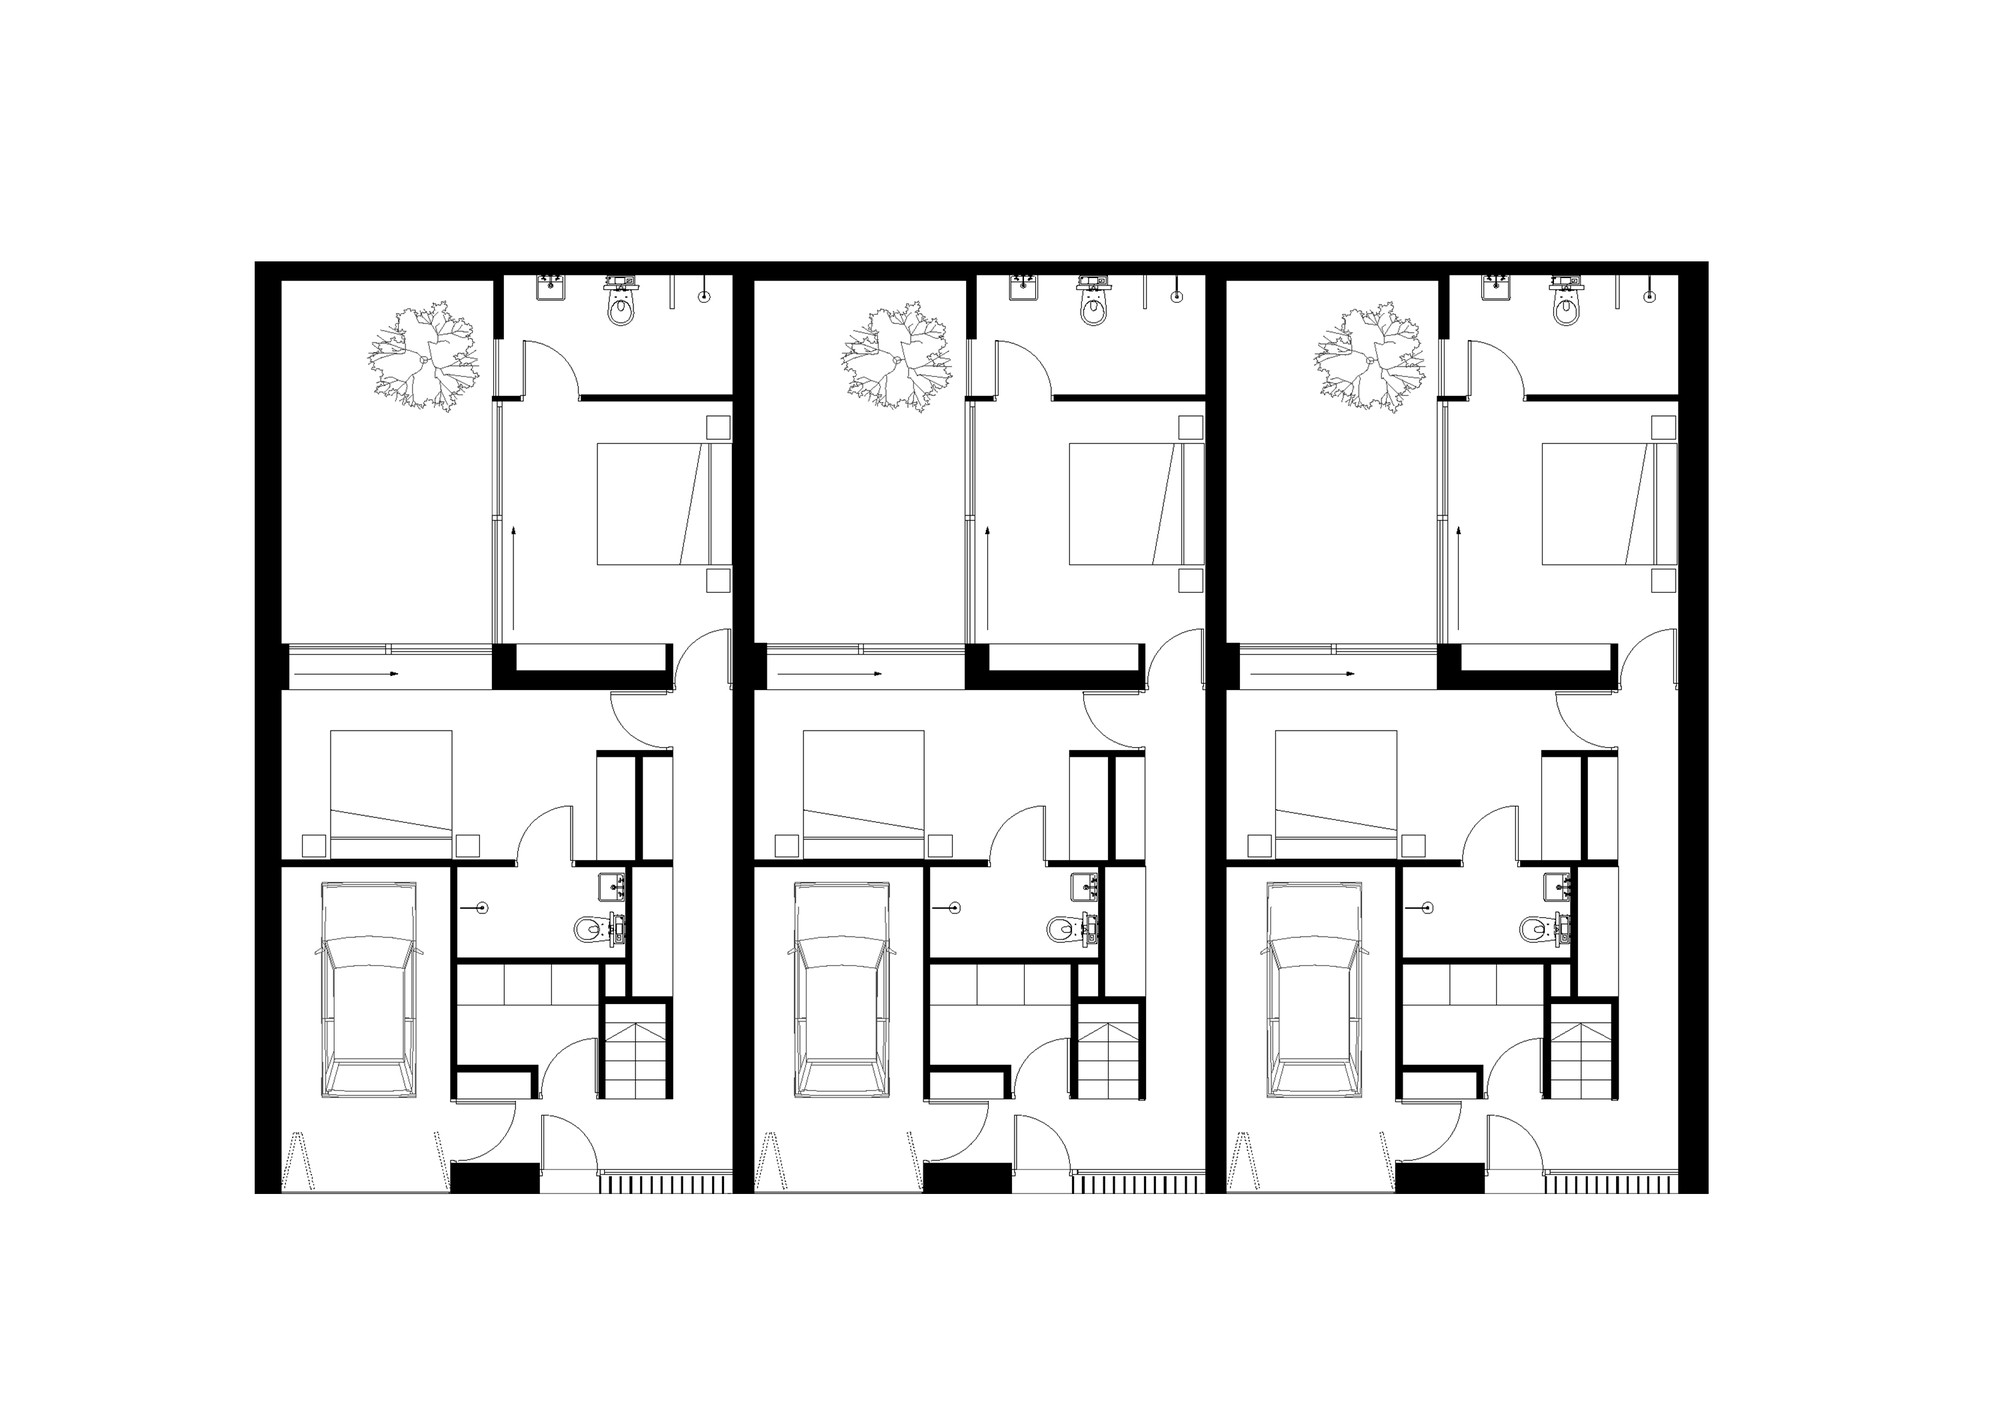 gallery of percy lane luxury homes odos architects 21 percy lane luxury homes ground floor plan